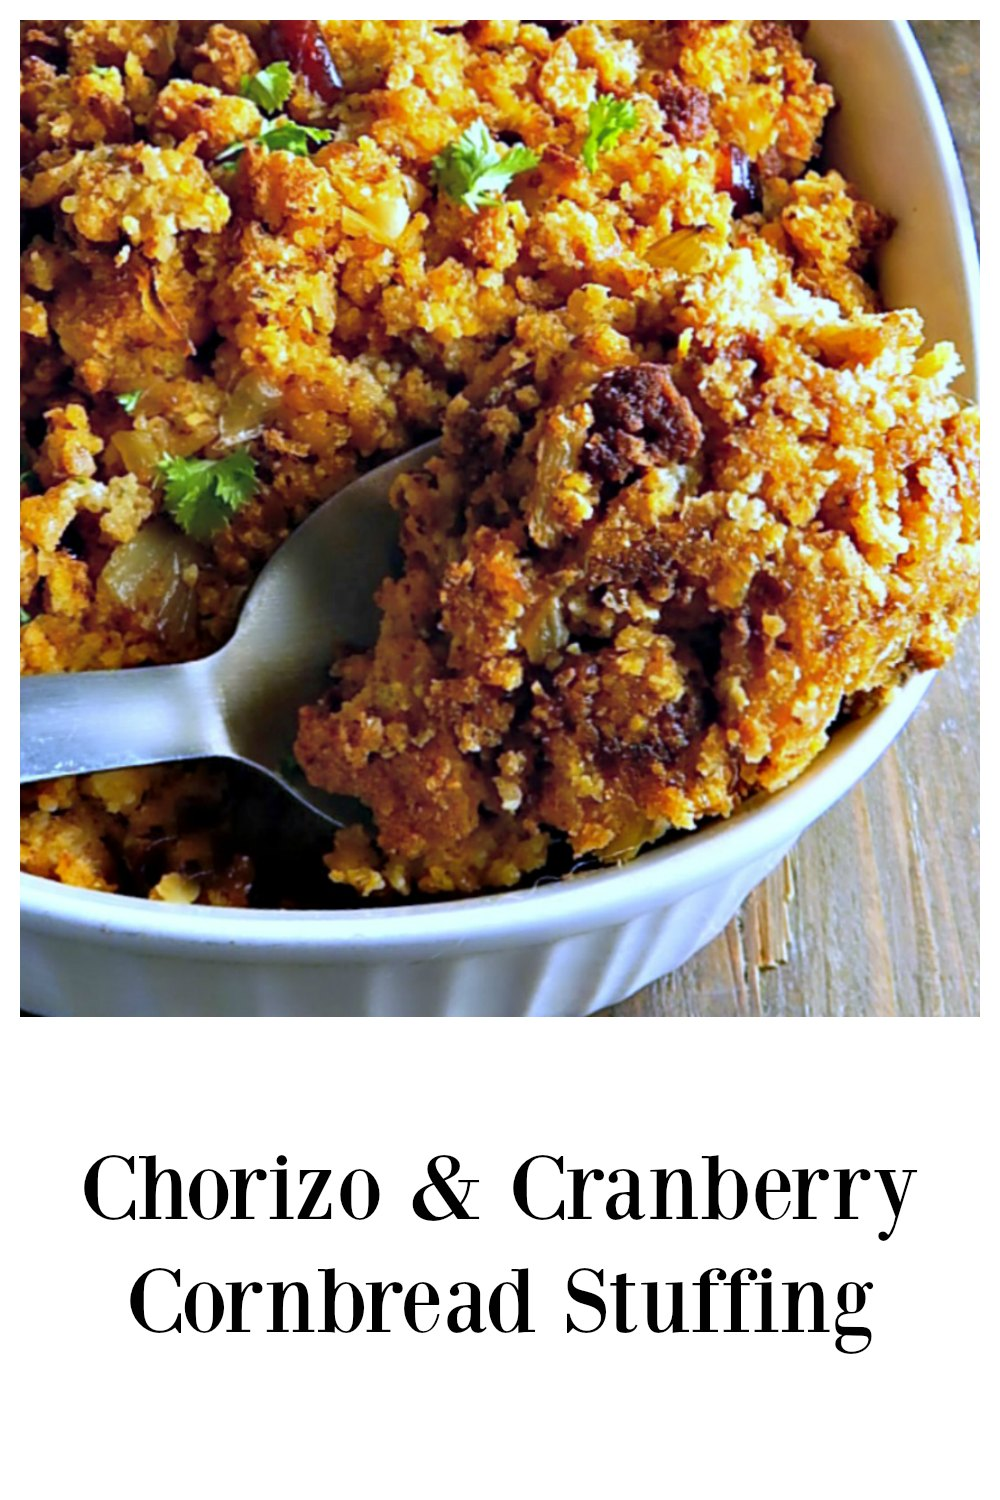 This Chorizo & Cranberry Cornbread Stuffing has a little bit of a Southwestern flair! It might become your new Thanksgiving Classic! The Chorizo adds just a bit of spice and that's offset by the sweet/tart cranberries in this favorite dressing. #ChorizoCornbreadStuffing #CornbreadStuffing #ThanksgivingStuffing #CornbreadDressing #ChorizoCornbreadDressing #ThanksgivingDressing